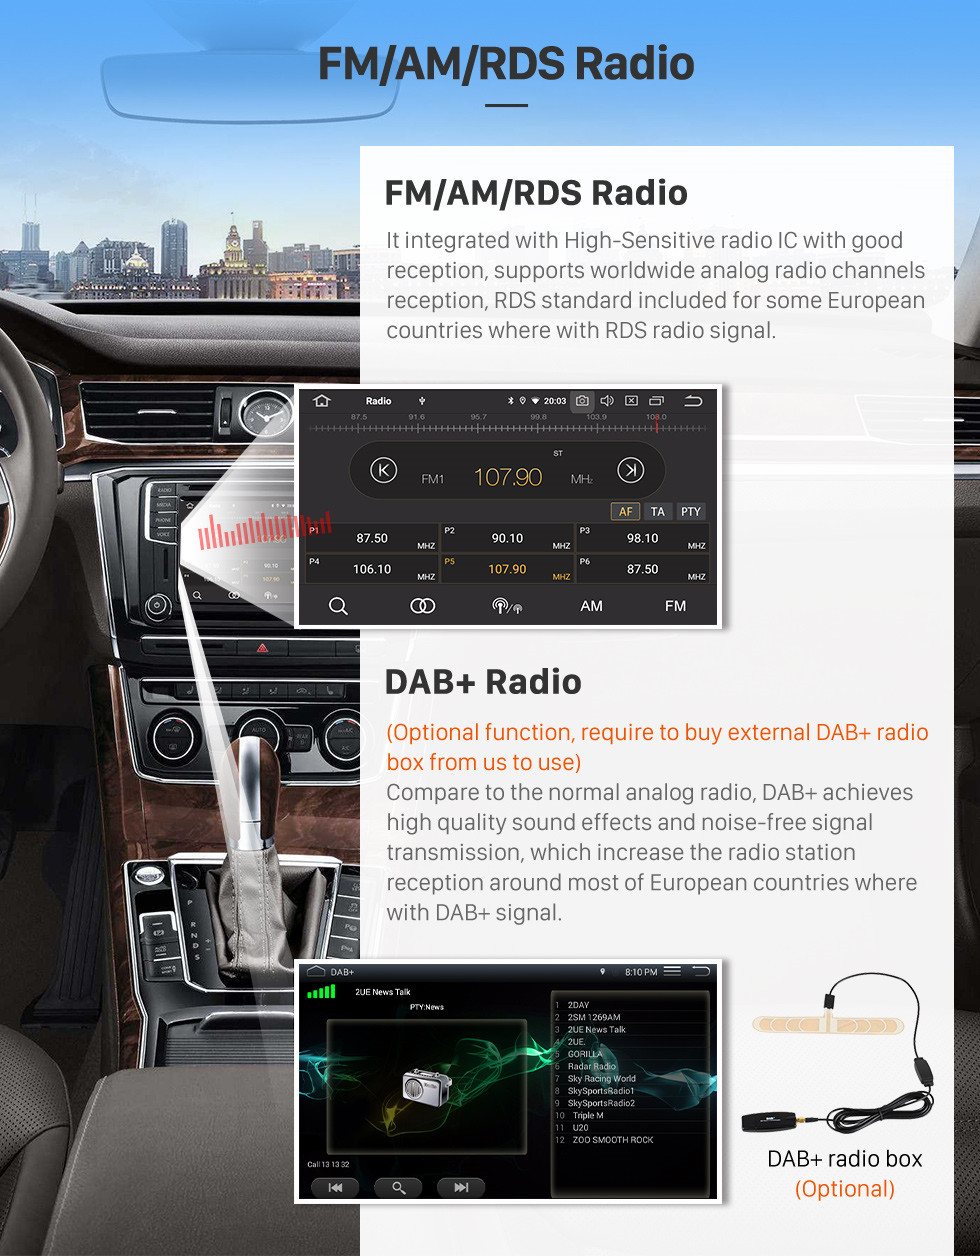 Seicane 8 Zoll Android 9.0 Radio IPS Vollbild GPS Navigation Auto Multimedia Player für 2005-2010 Mercedes Benz CLS W219 CLS350 CLS500 CLS55 mit RDS 3G WiFi Bluetooth Spiegel Link OBD2 Lenkradsteuerung